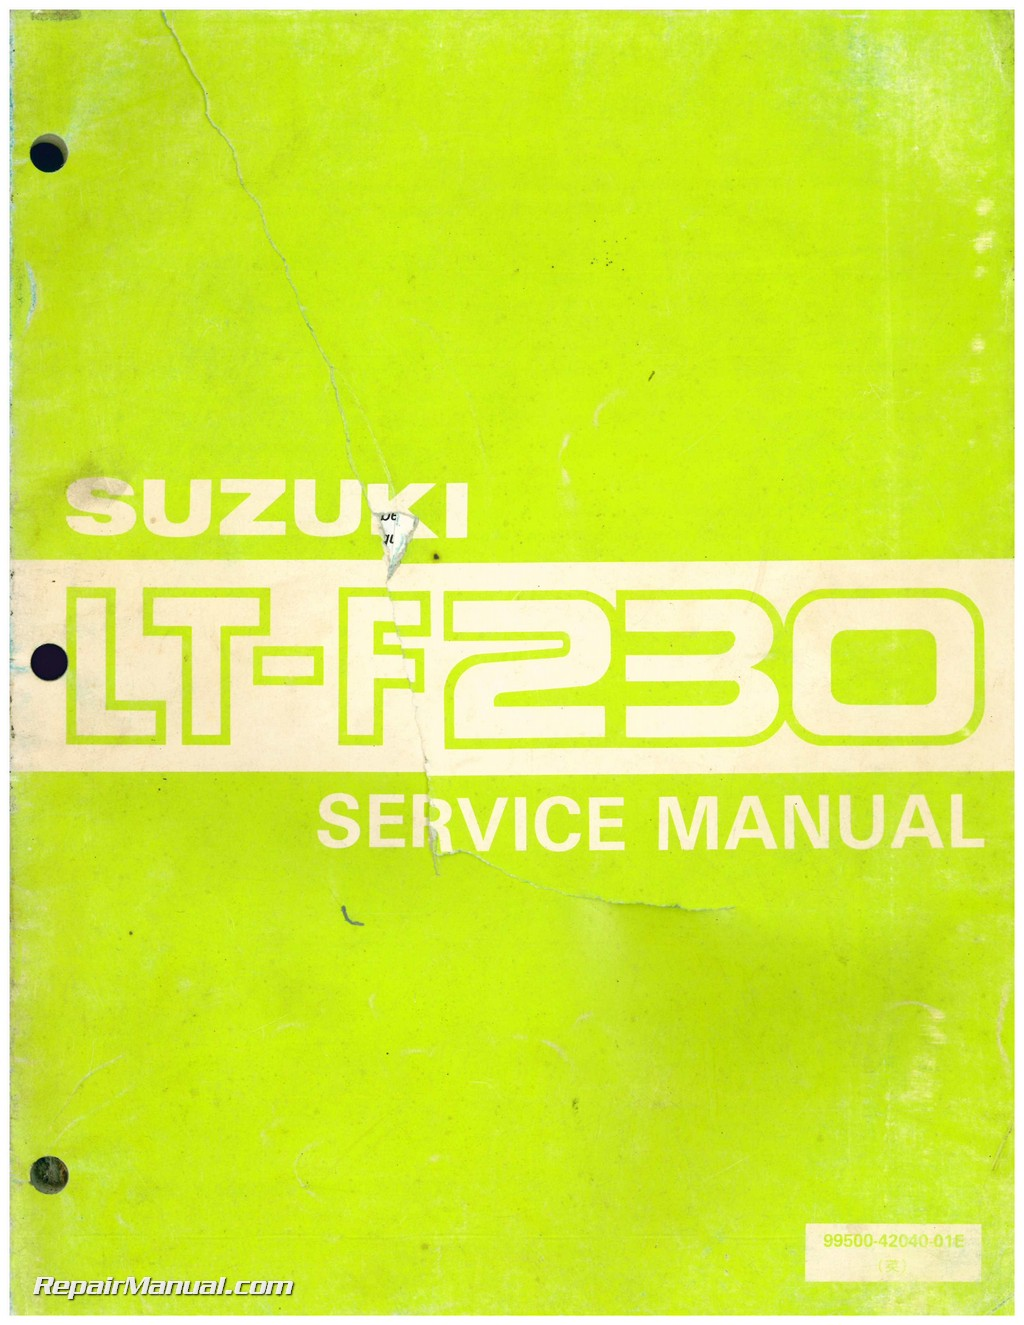 used 1986 suzuki lt f230 atv service manual 1984 suzuki lt 125 service manual pdf Suzuki 125 Quad